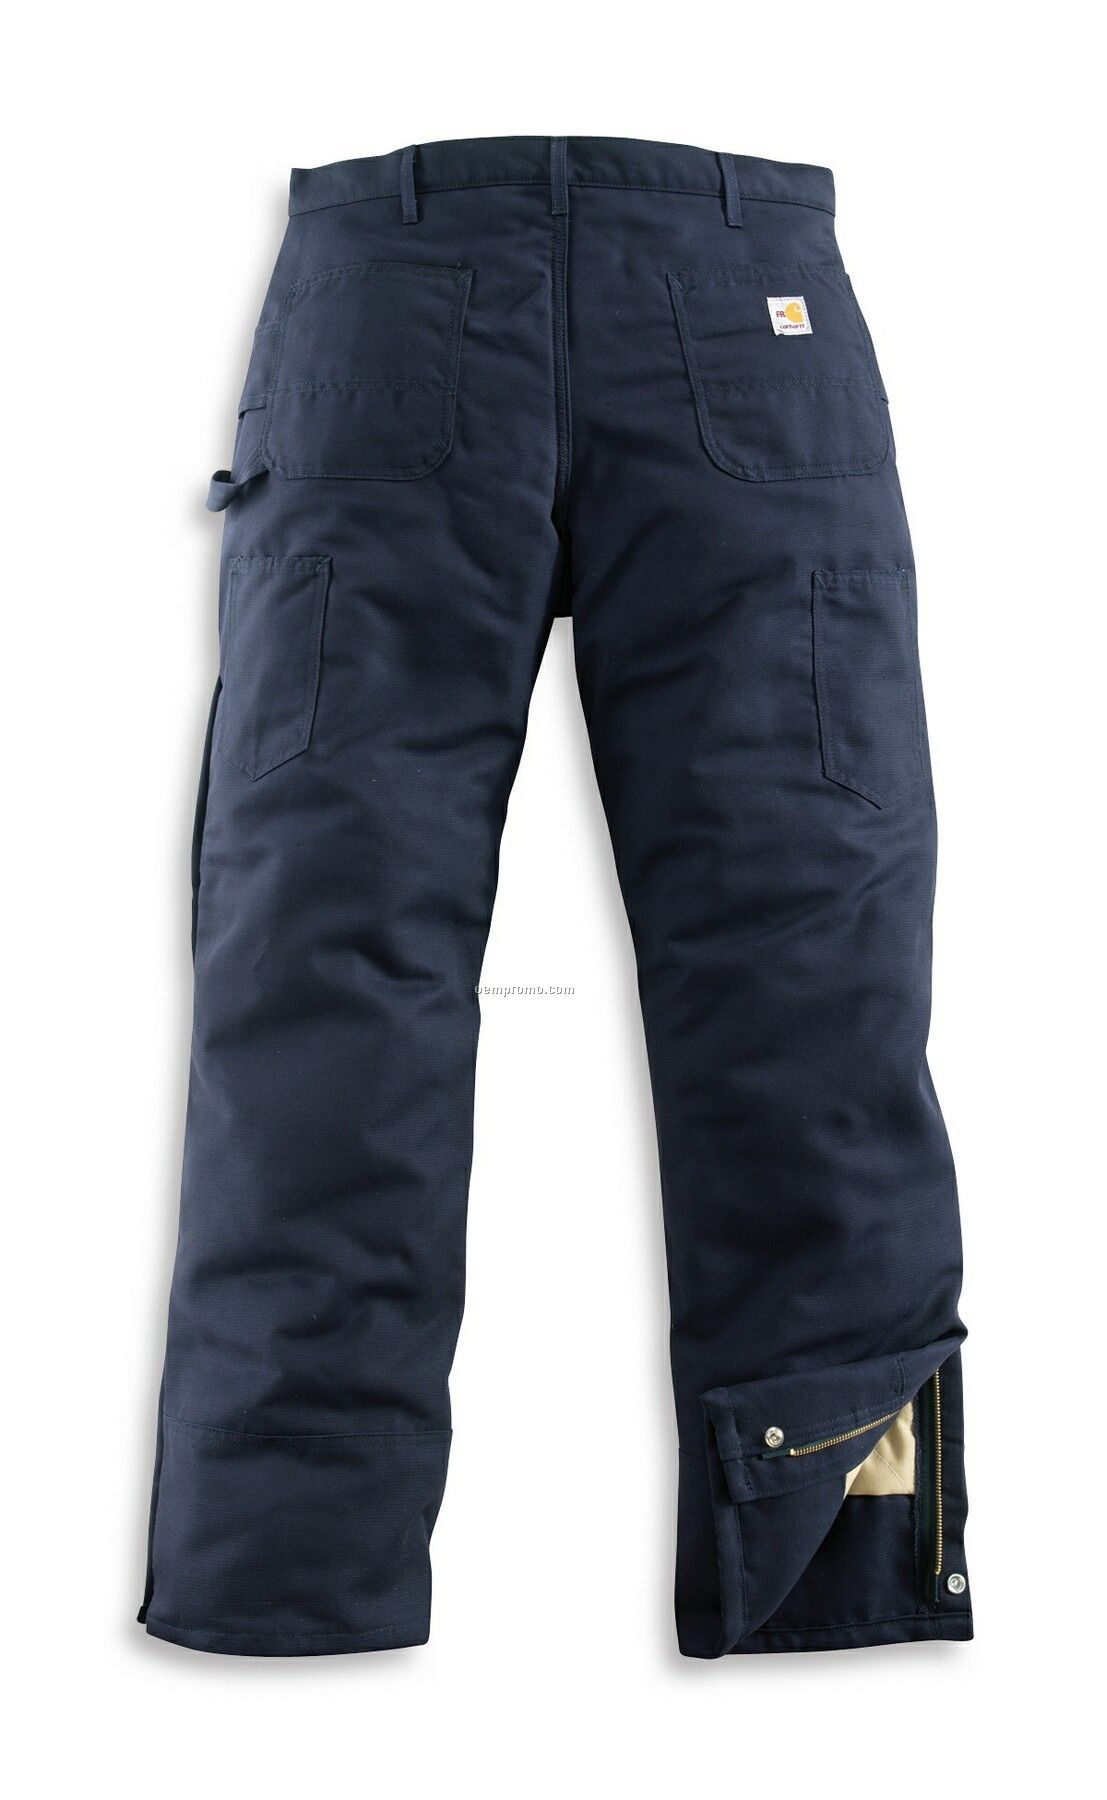 Carhartt Men's Flame Resistant Midweight Canvas Waist Overall/ Quilt Lined